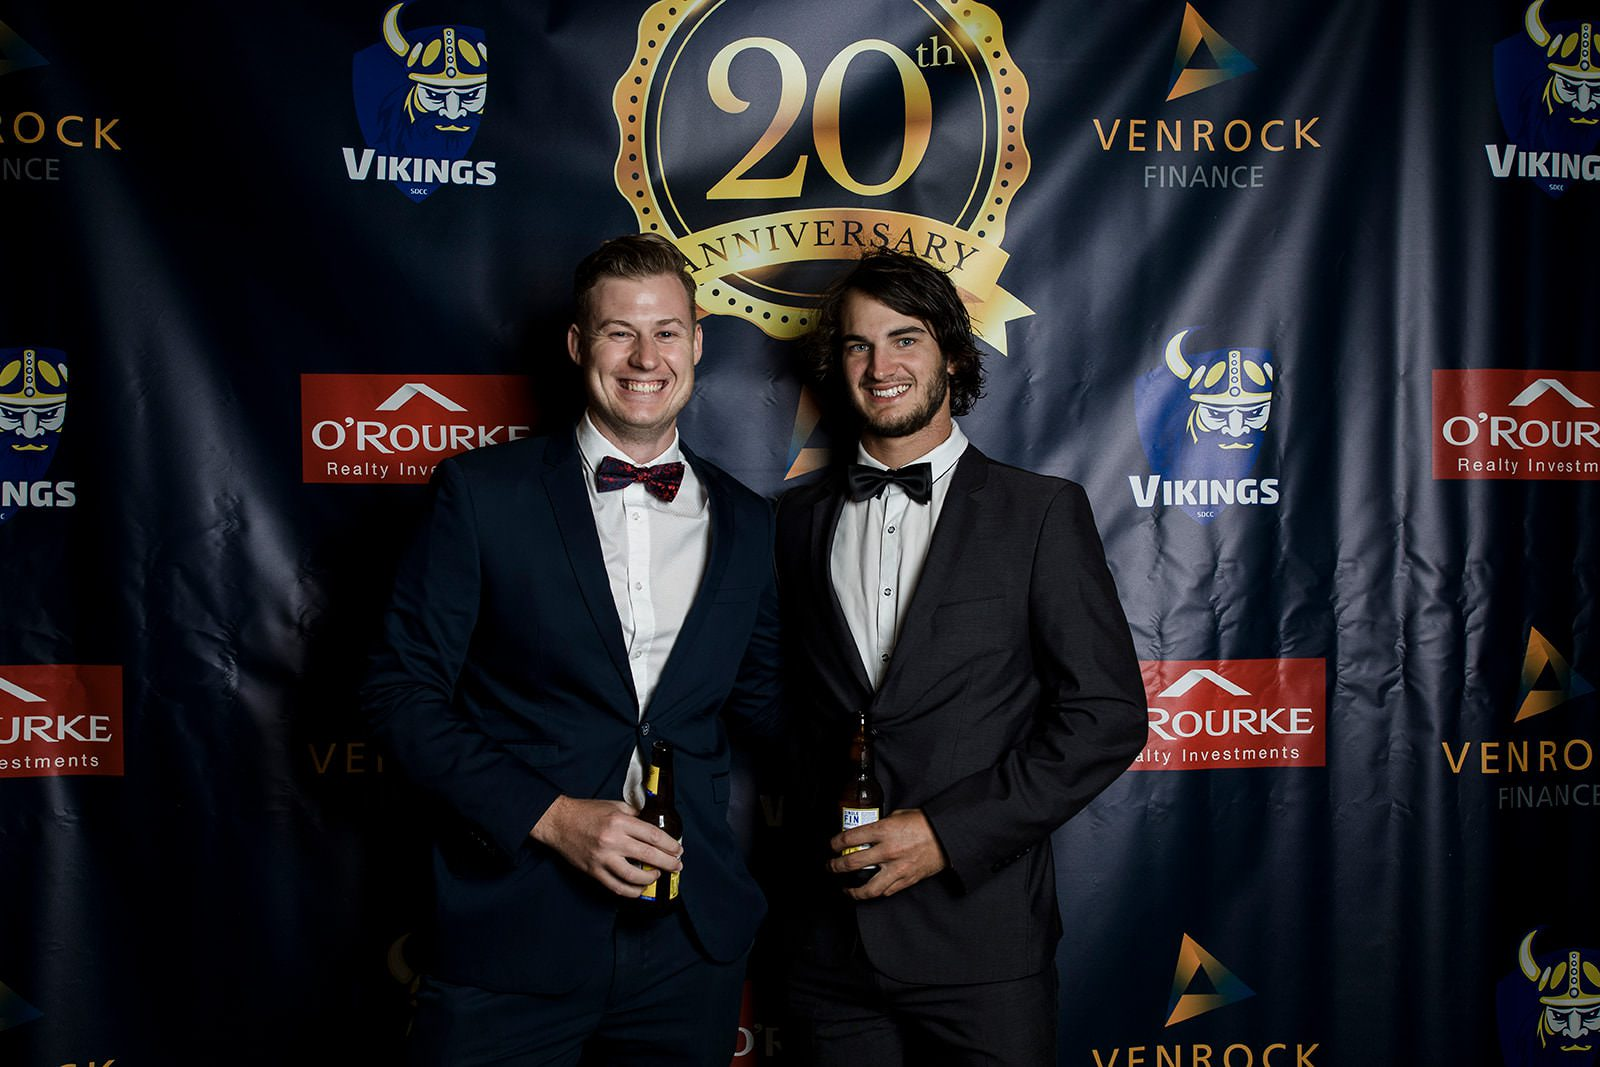 Perth event photography by Dennis Tan Creative for Sorrento Duncraig Cricket Club's 20th anniversary dinner